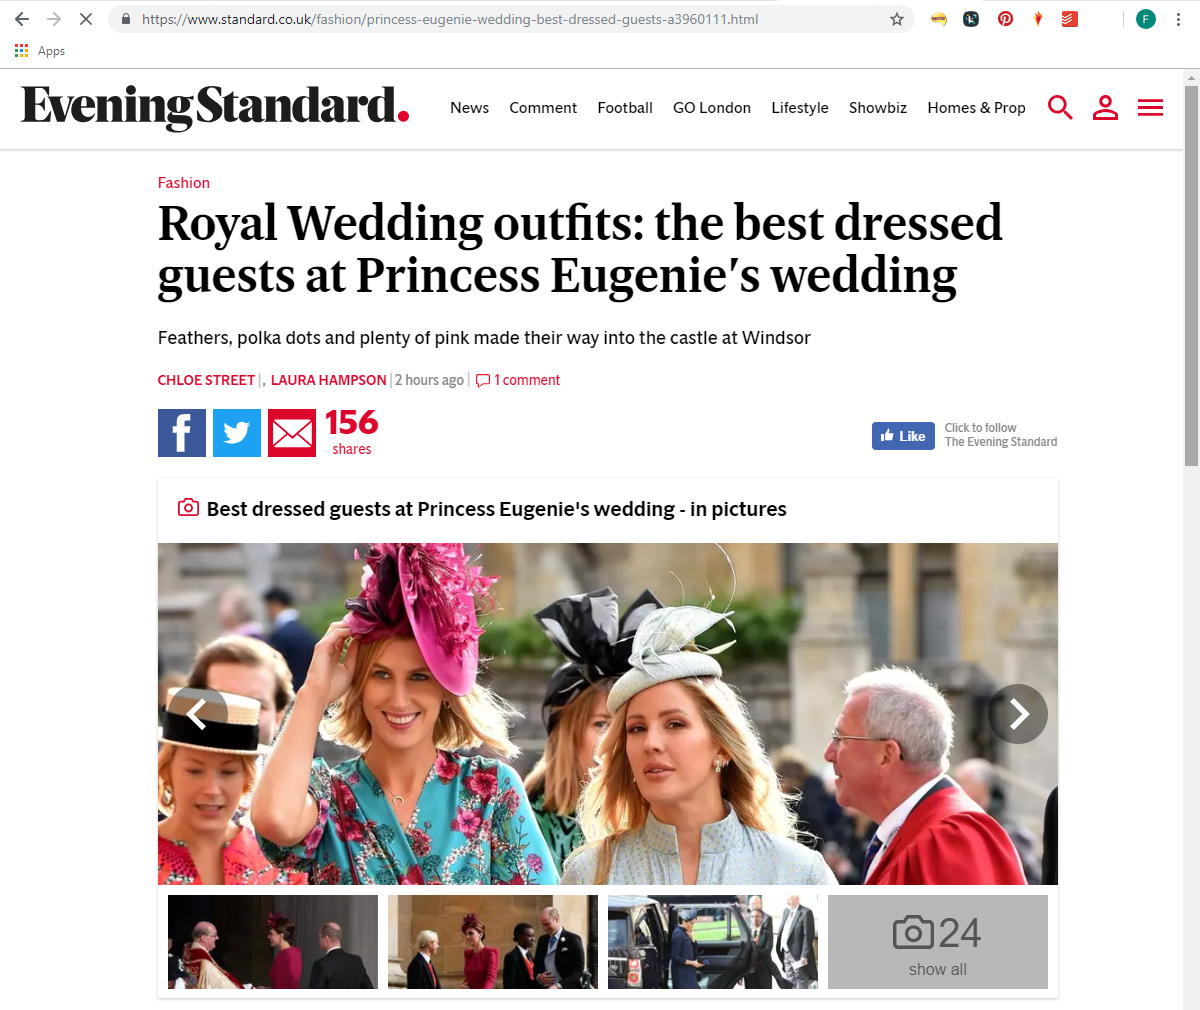 Evening Standard Best Dressed Guests at Princess Eugenies Wedding. What to wear to an Autumn Wedding. Royal Wedding Guests. Wedding Guest Outfits for Autumn Wedding